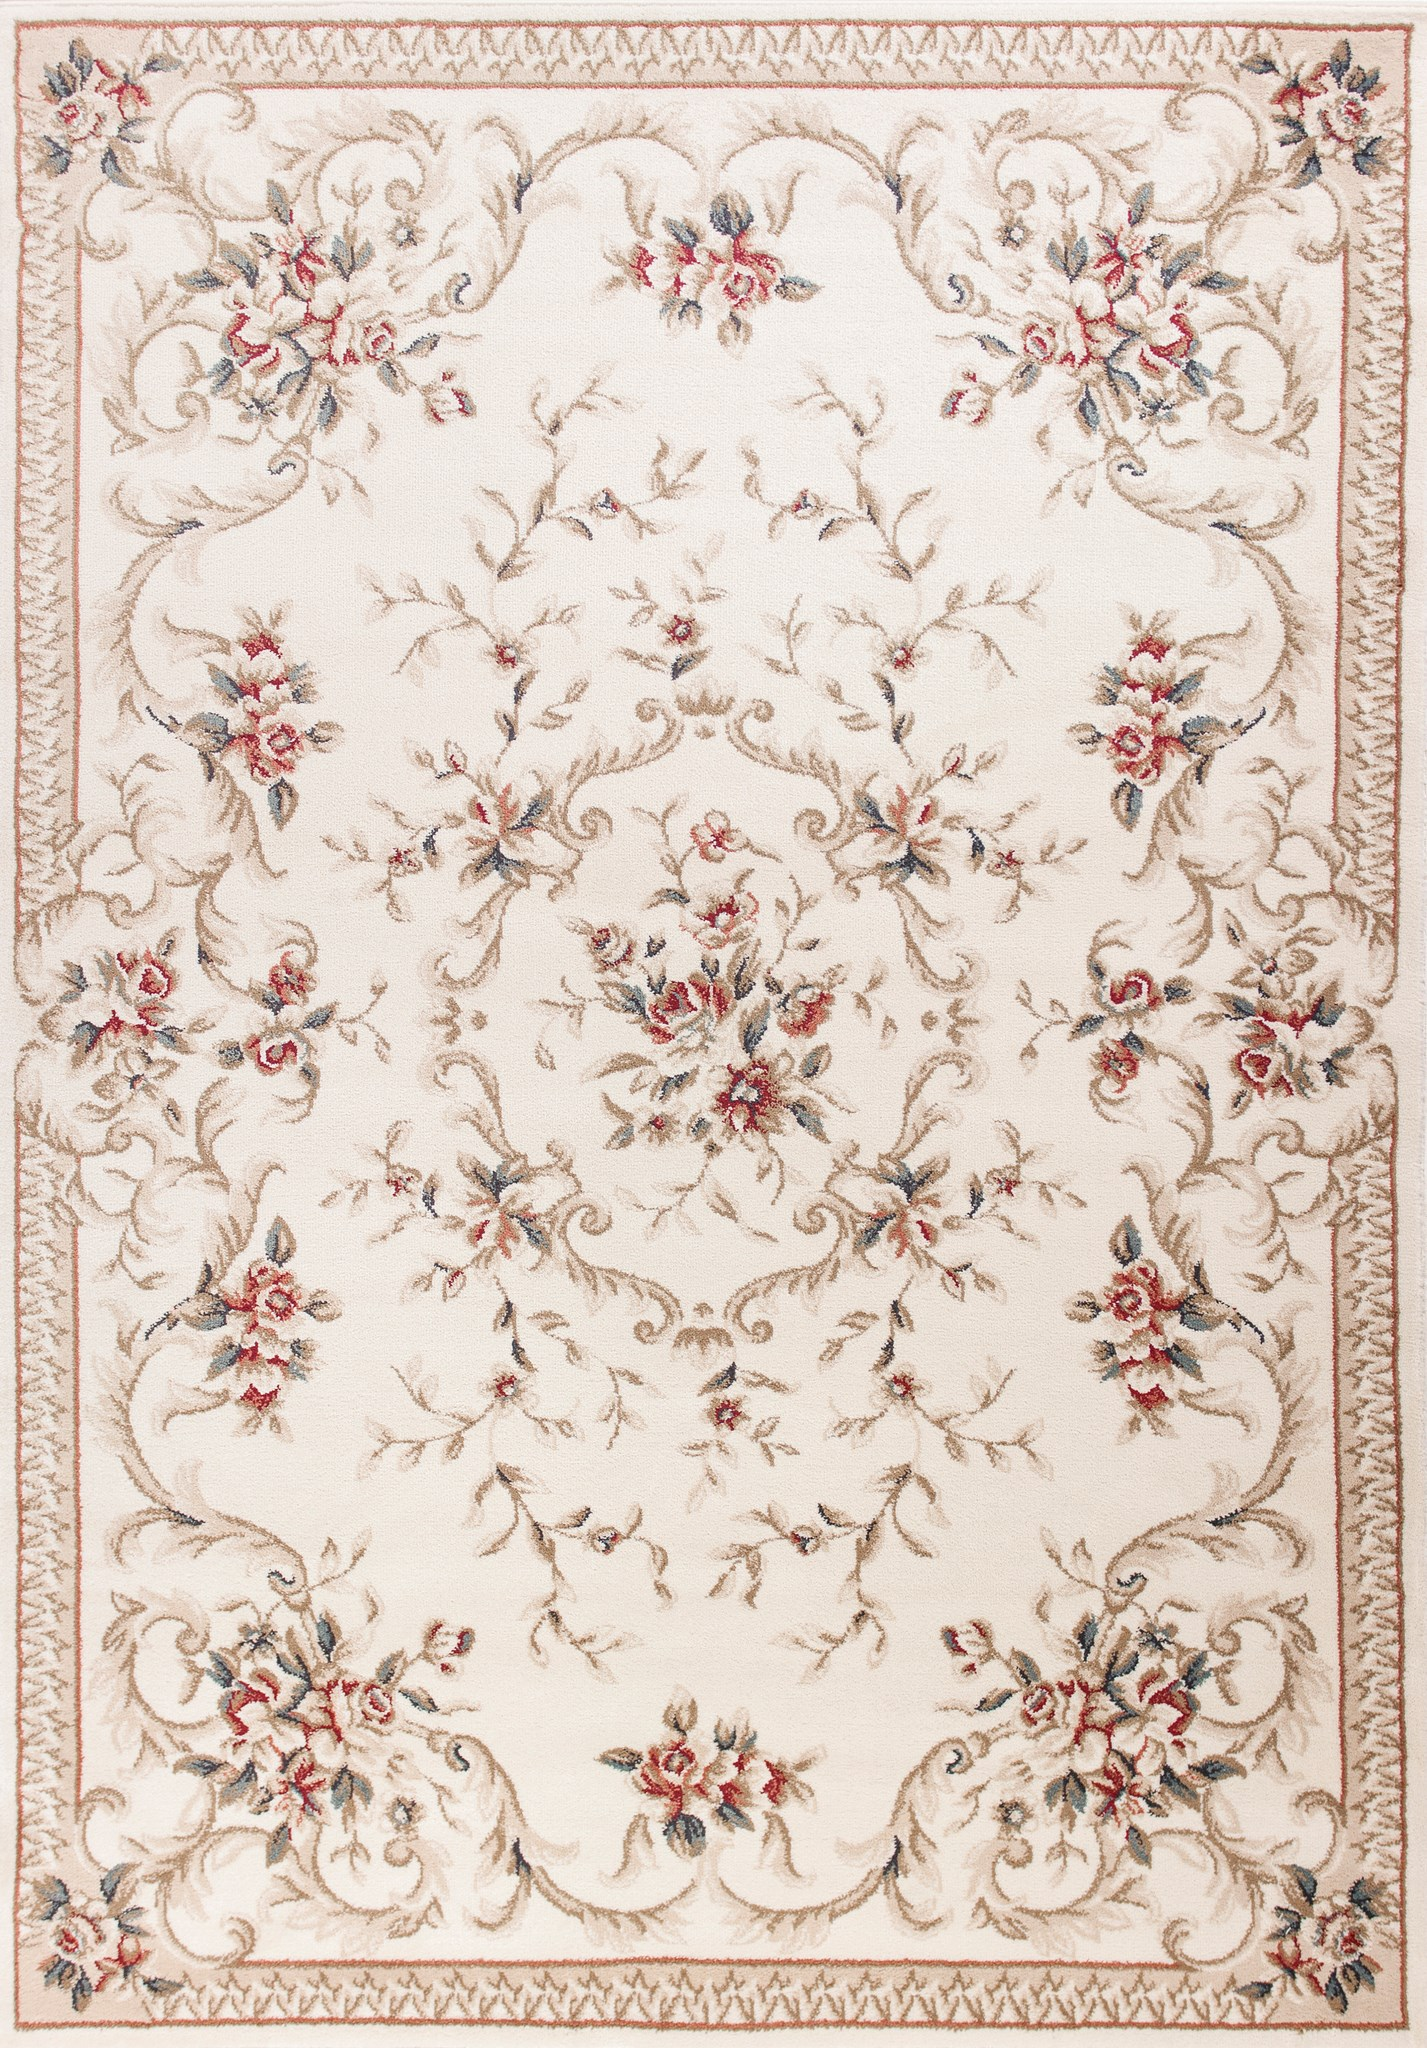 Avalon 5606 Ivory Aubusson